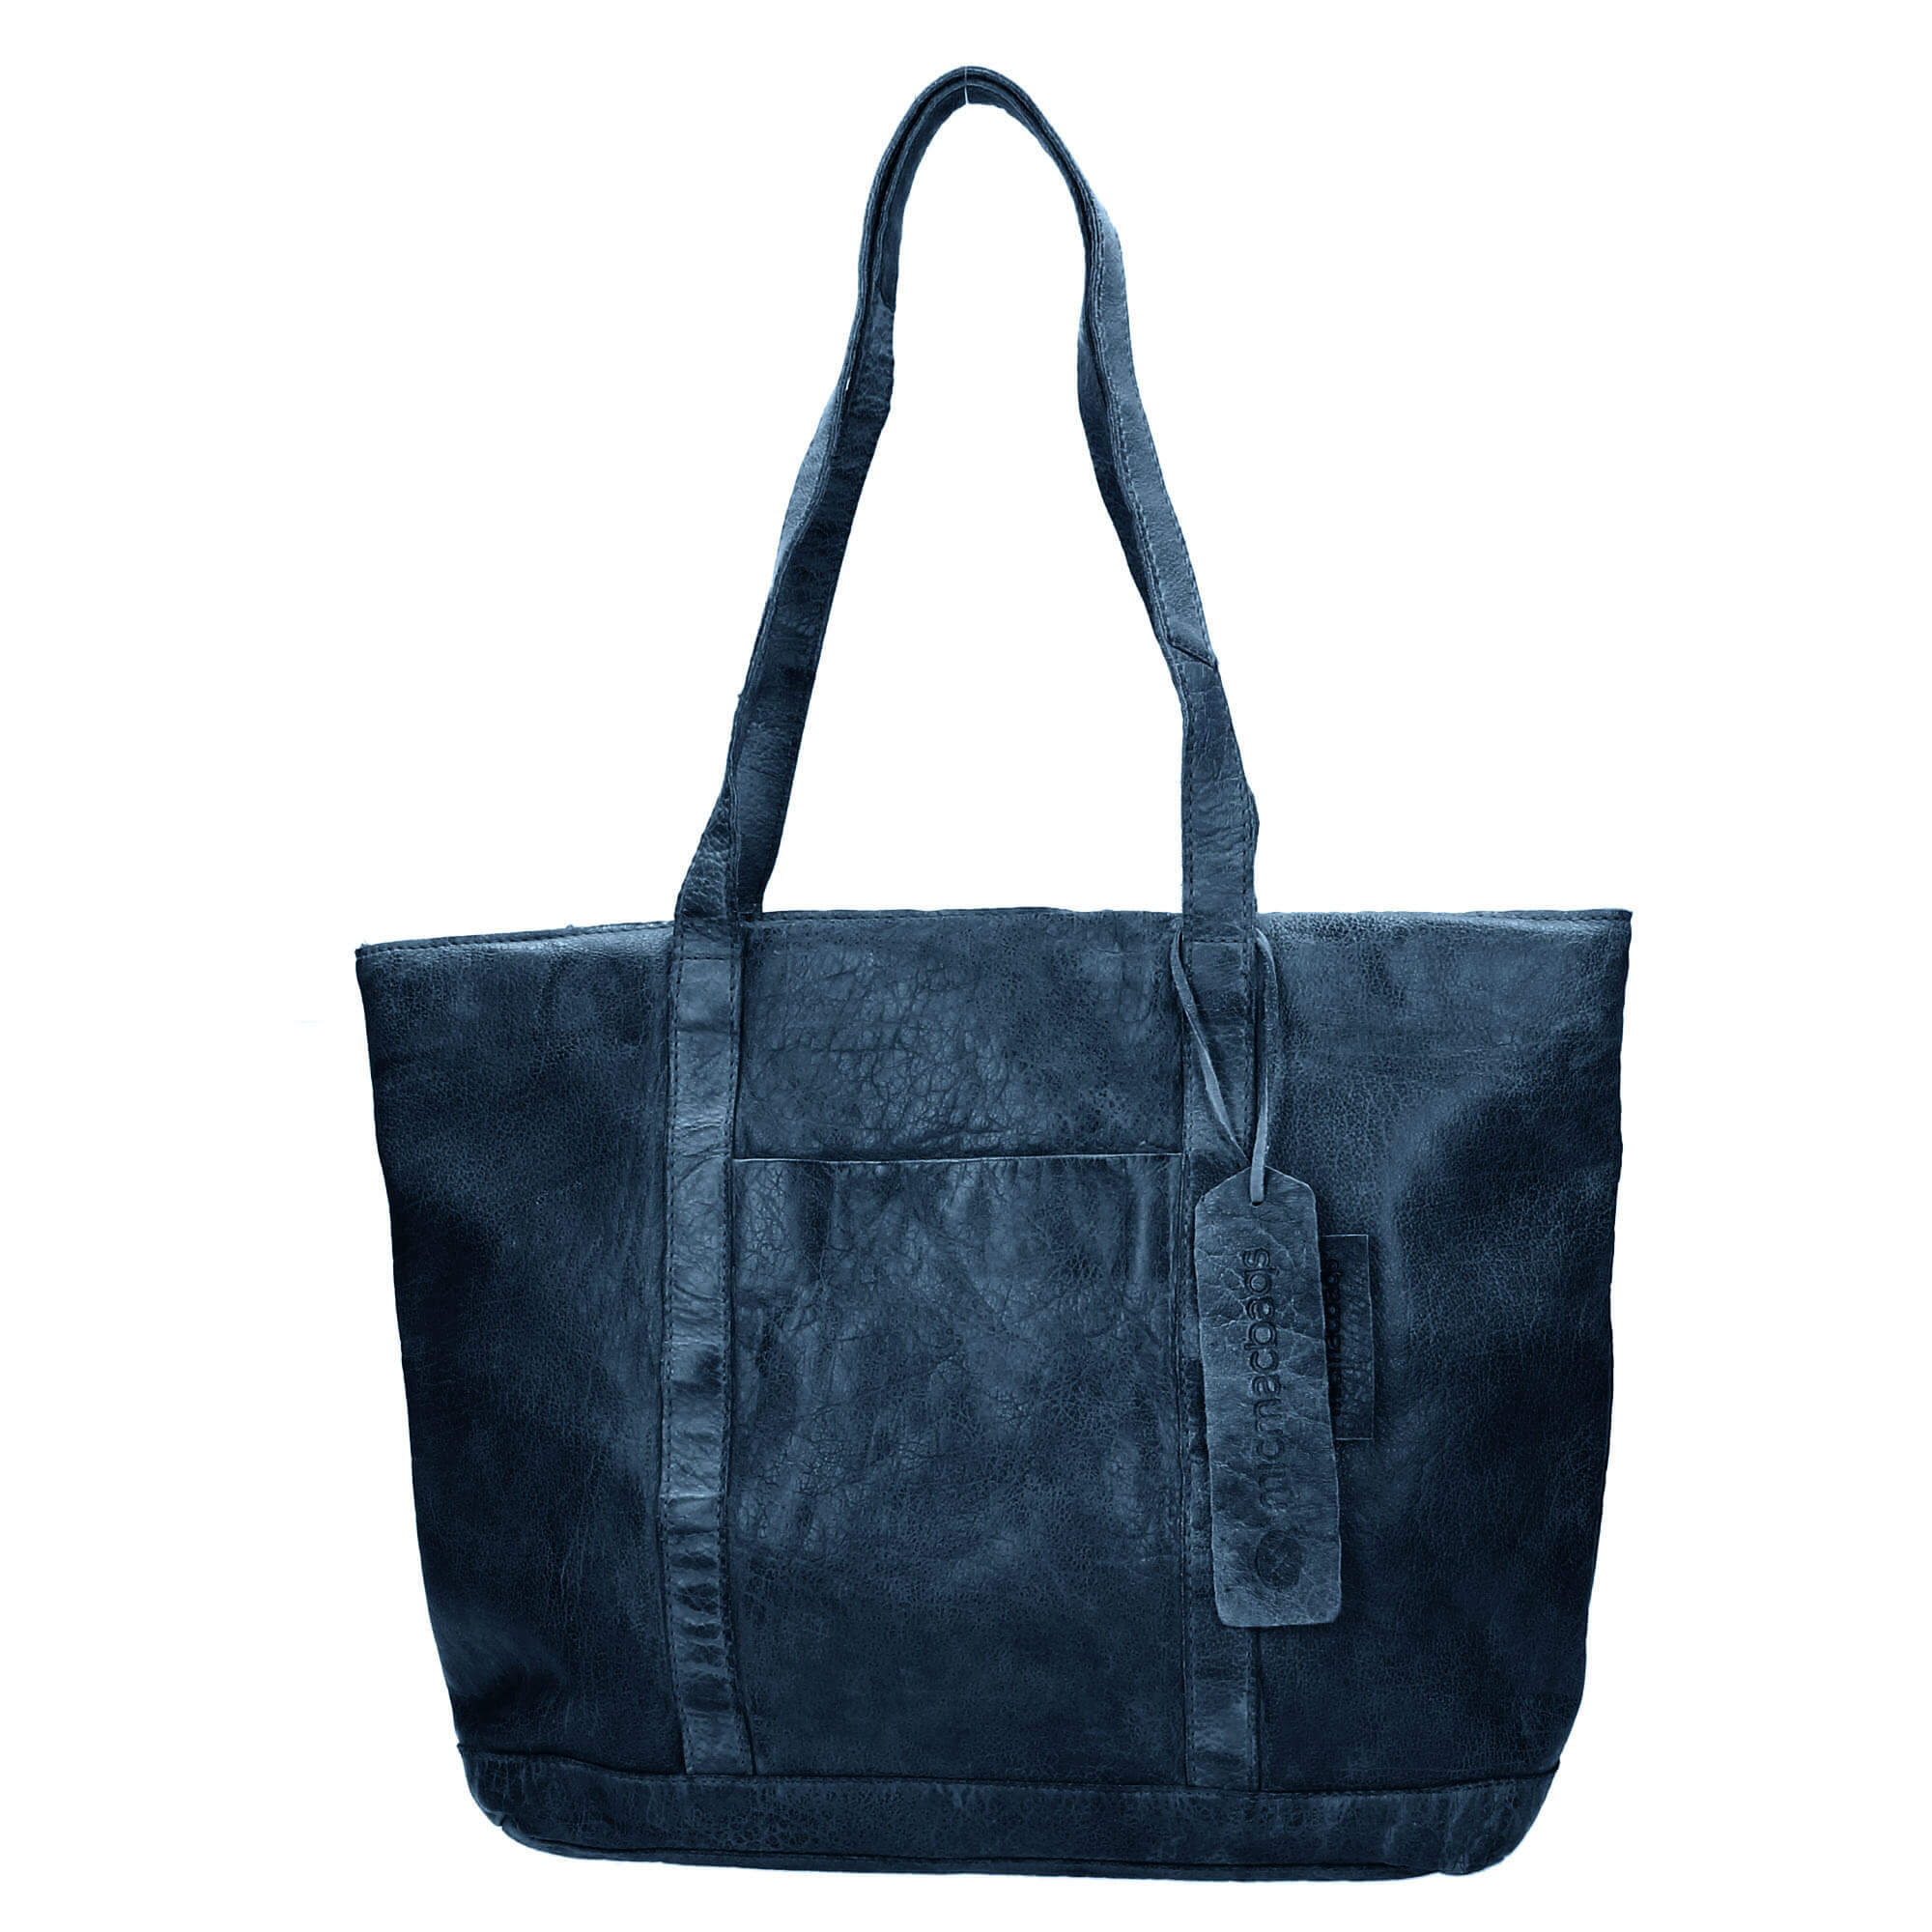 Micmacbags, Shopper, 16556, Navy